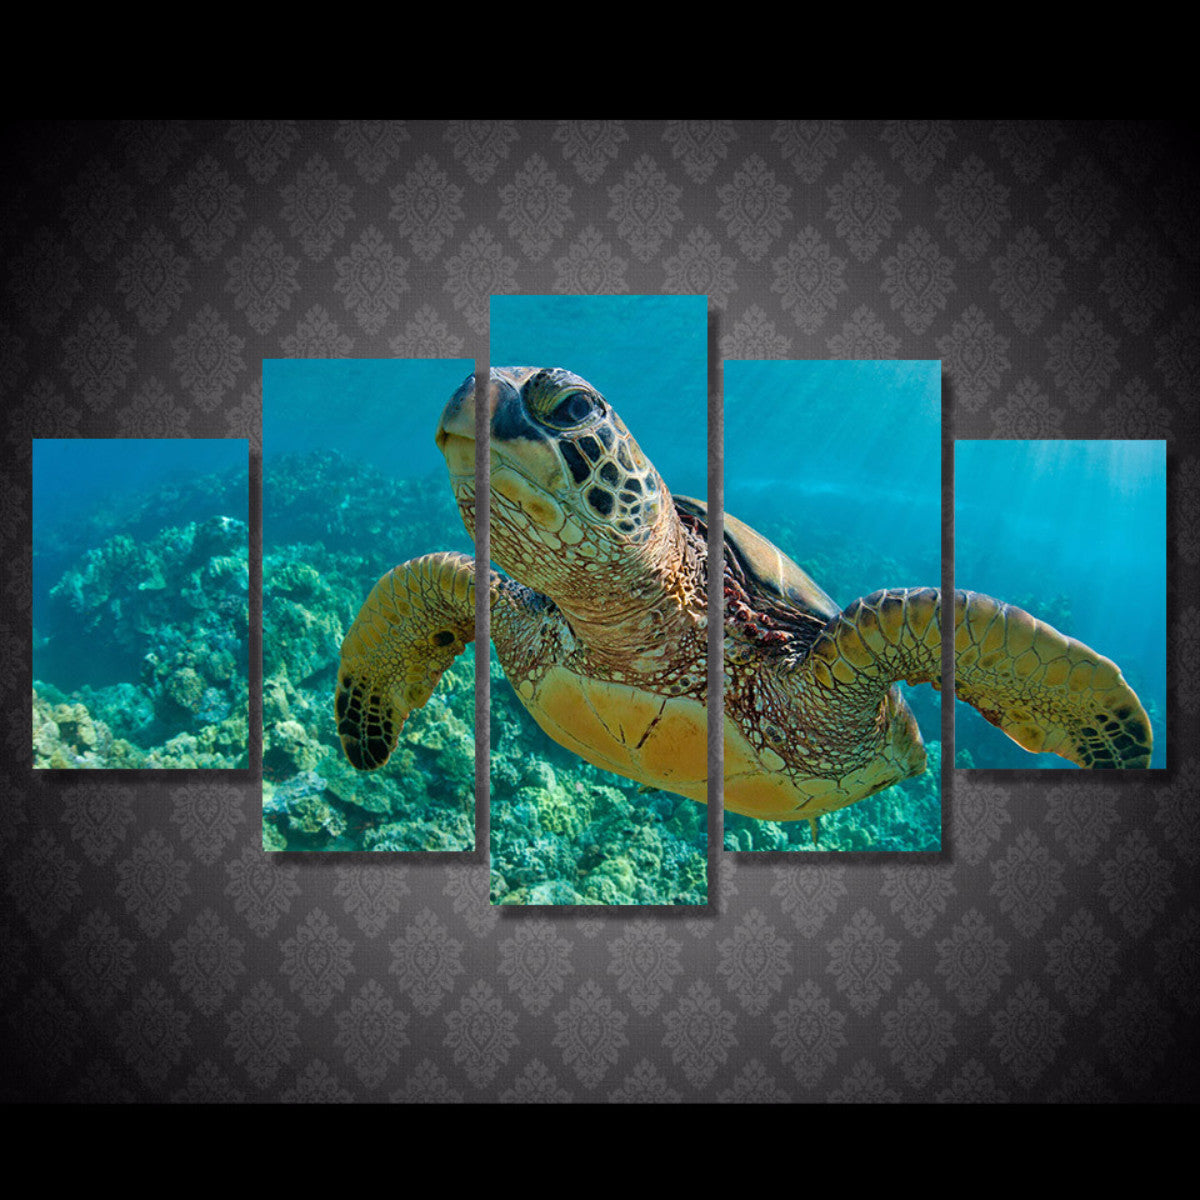 Turtle Exquisite 5 Piece Canvas